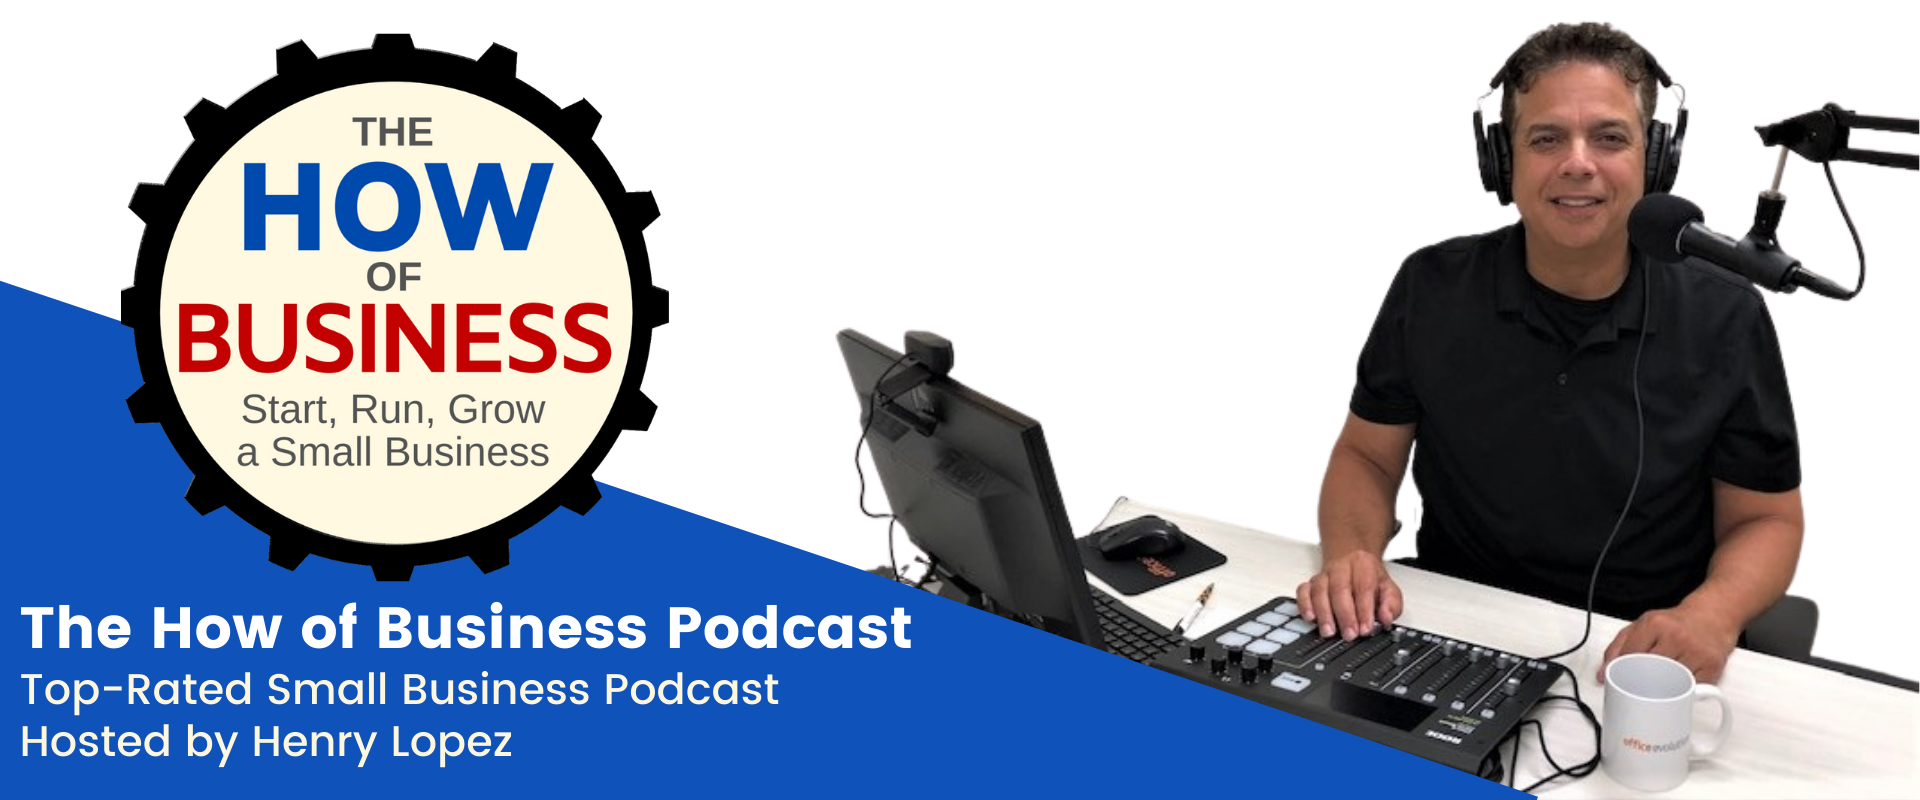 The How of Business Podcast with Henry Lopez